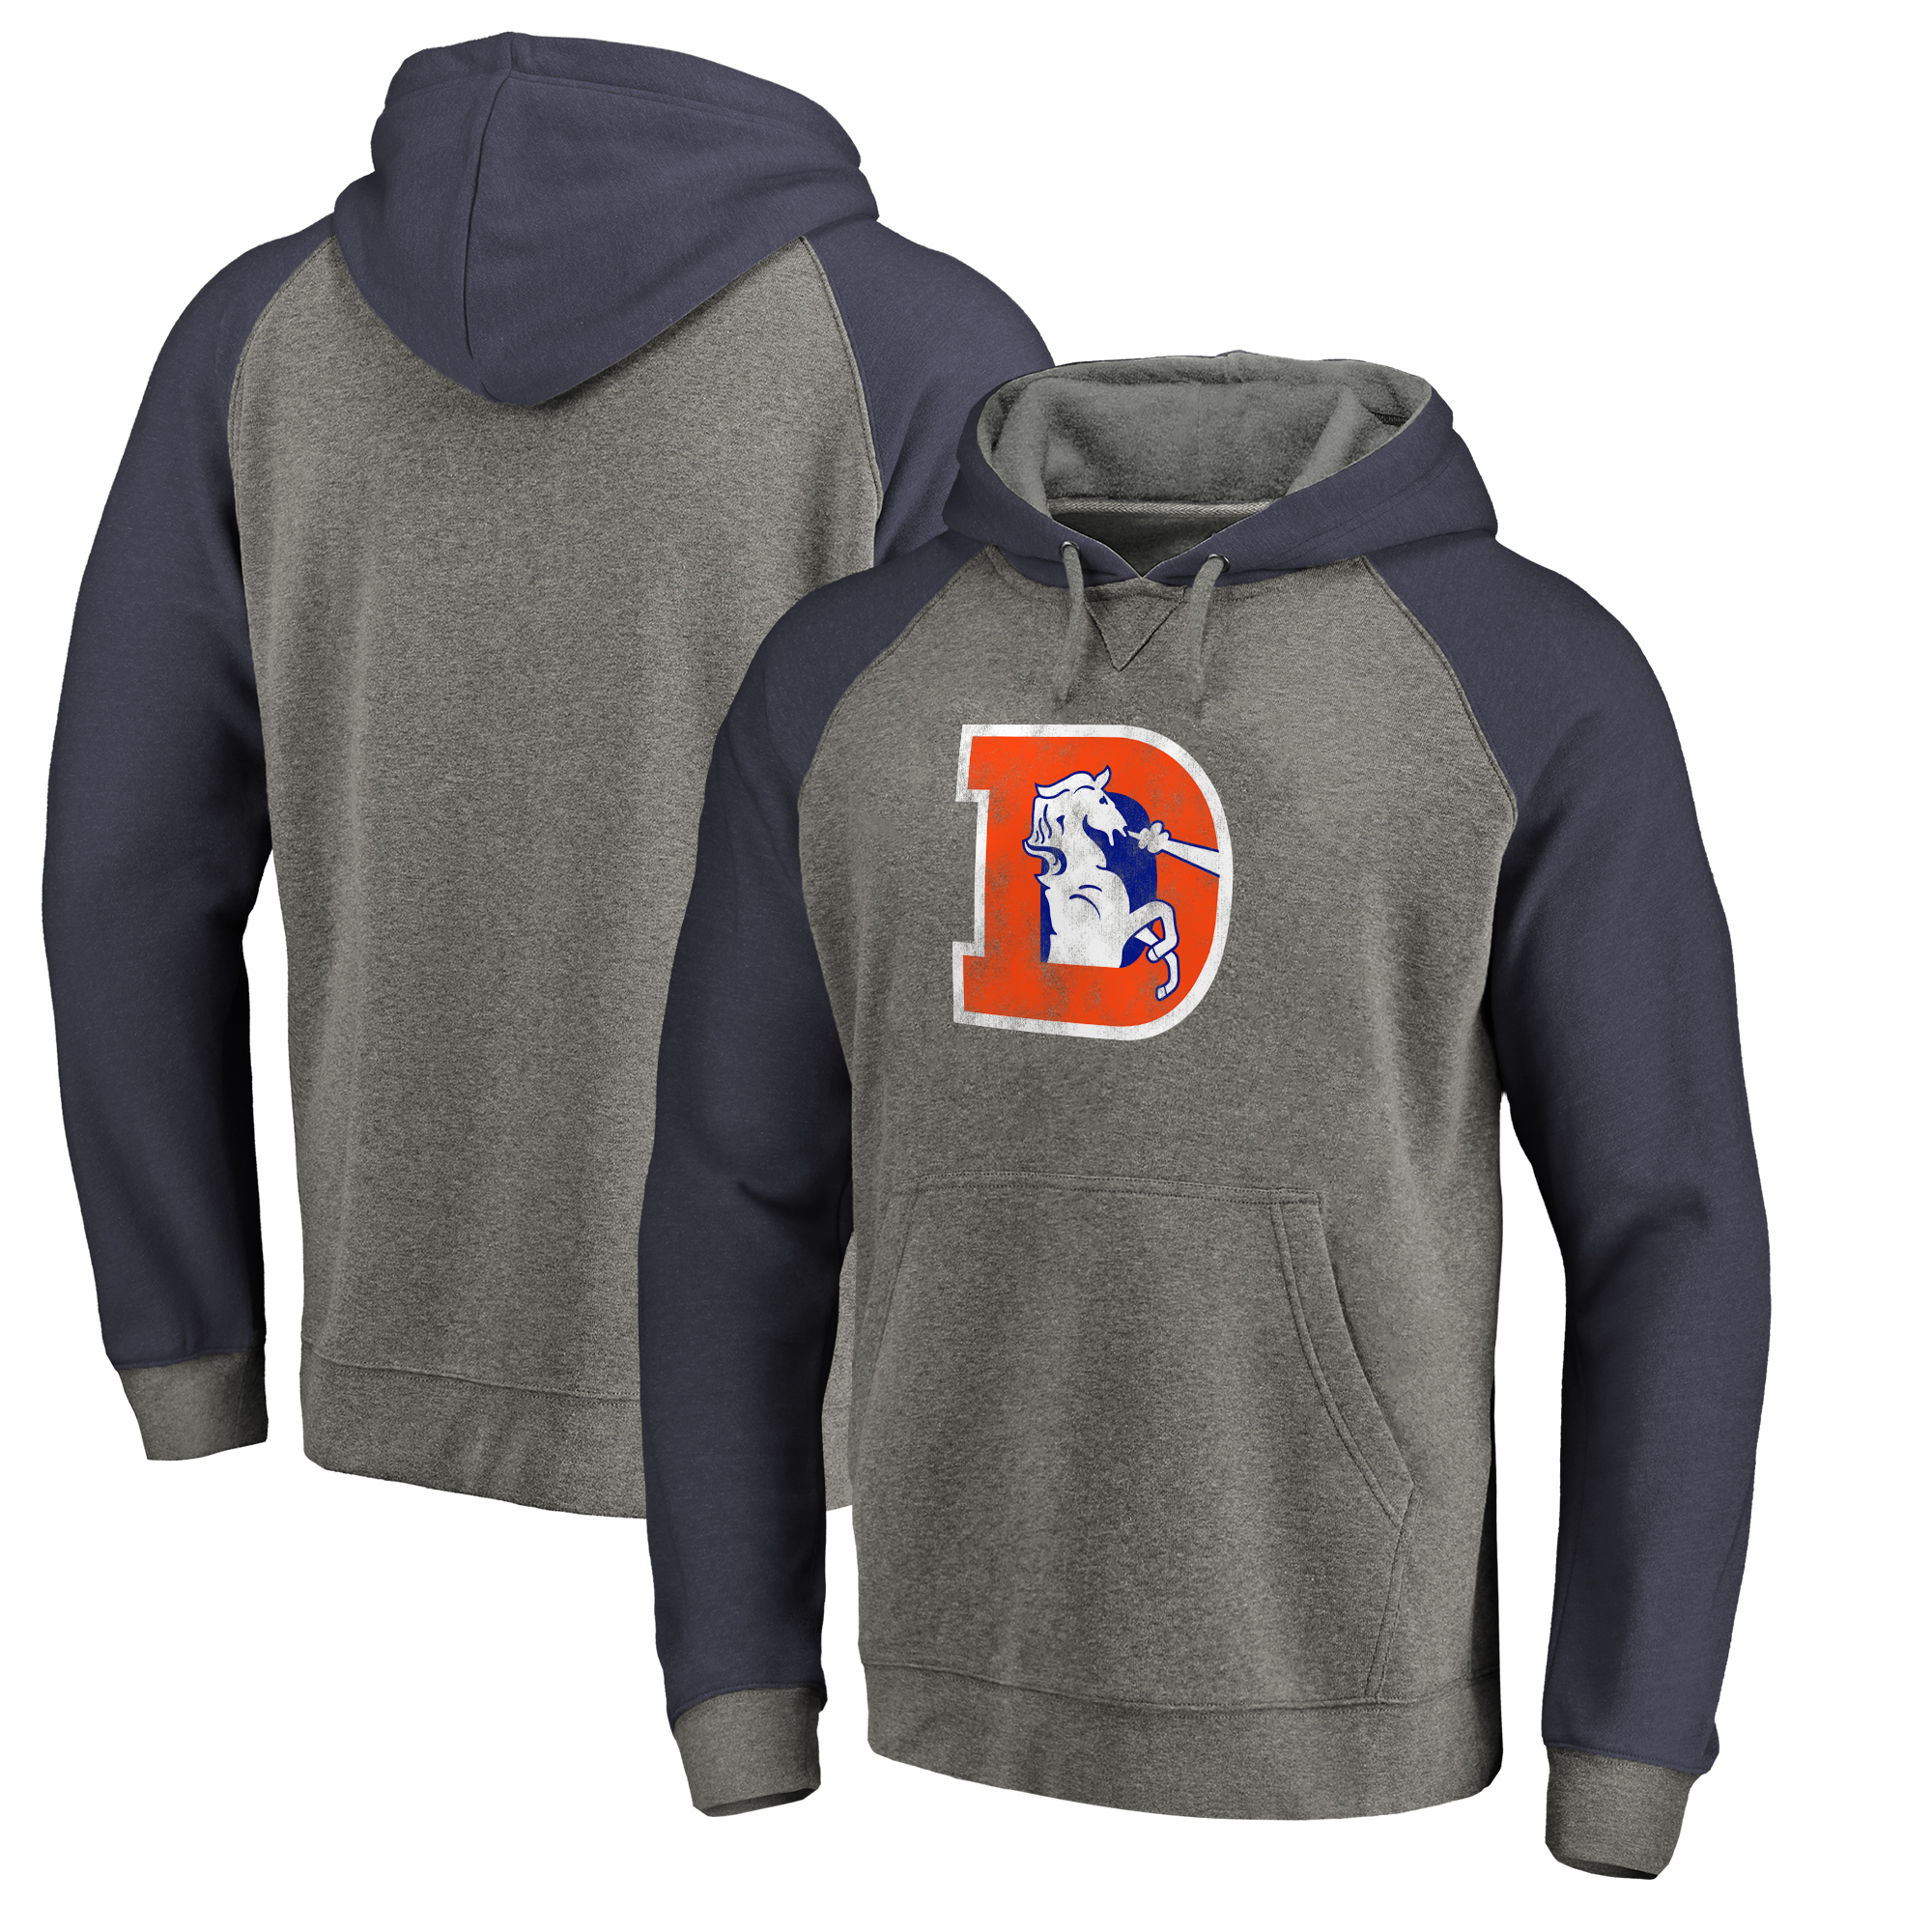 Denver Broncos NFL Pro Line by Fanatics Branded Throwback Logo Big & Tall Tri-Blend Raglan Pullover Hoodie - Gray/Navy